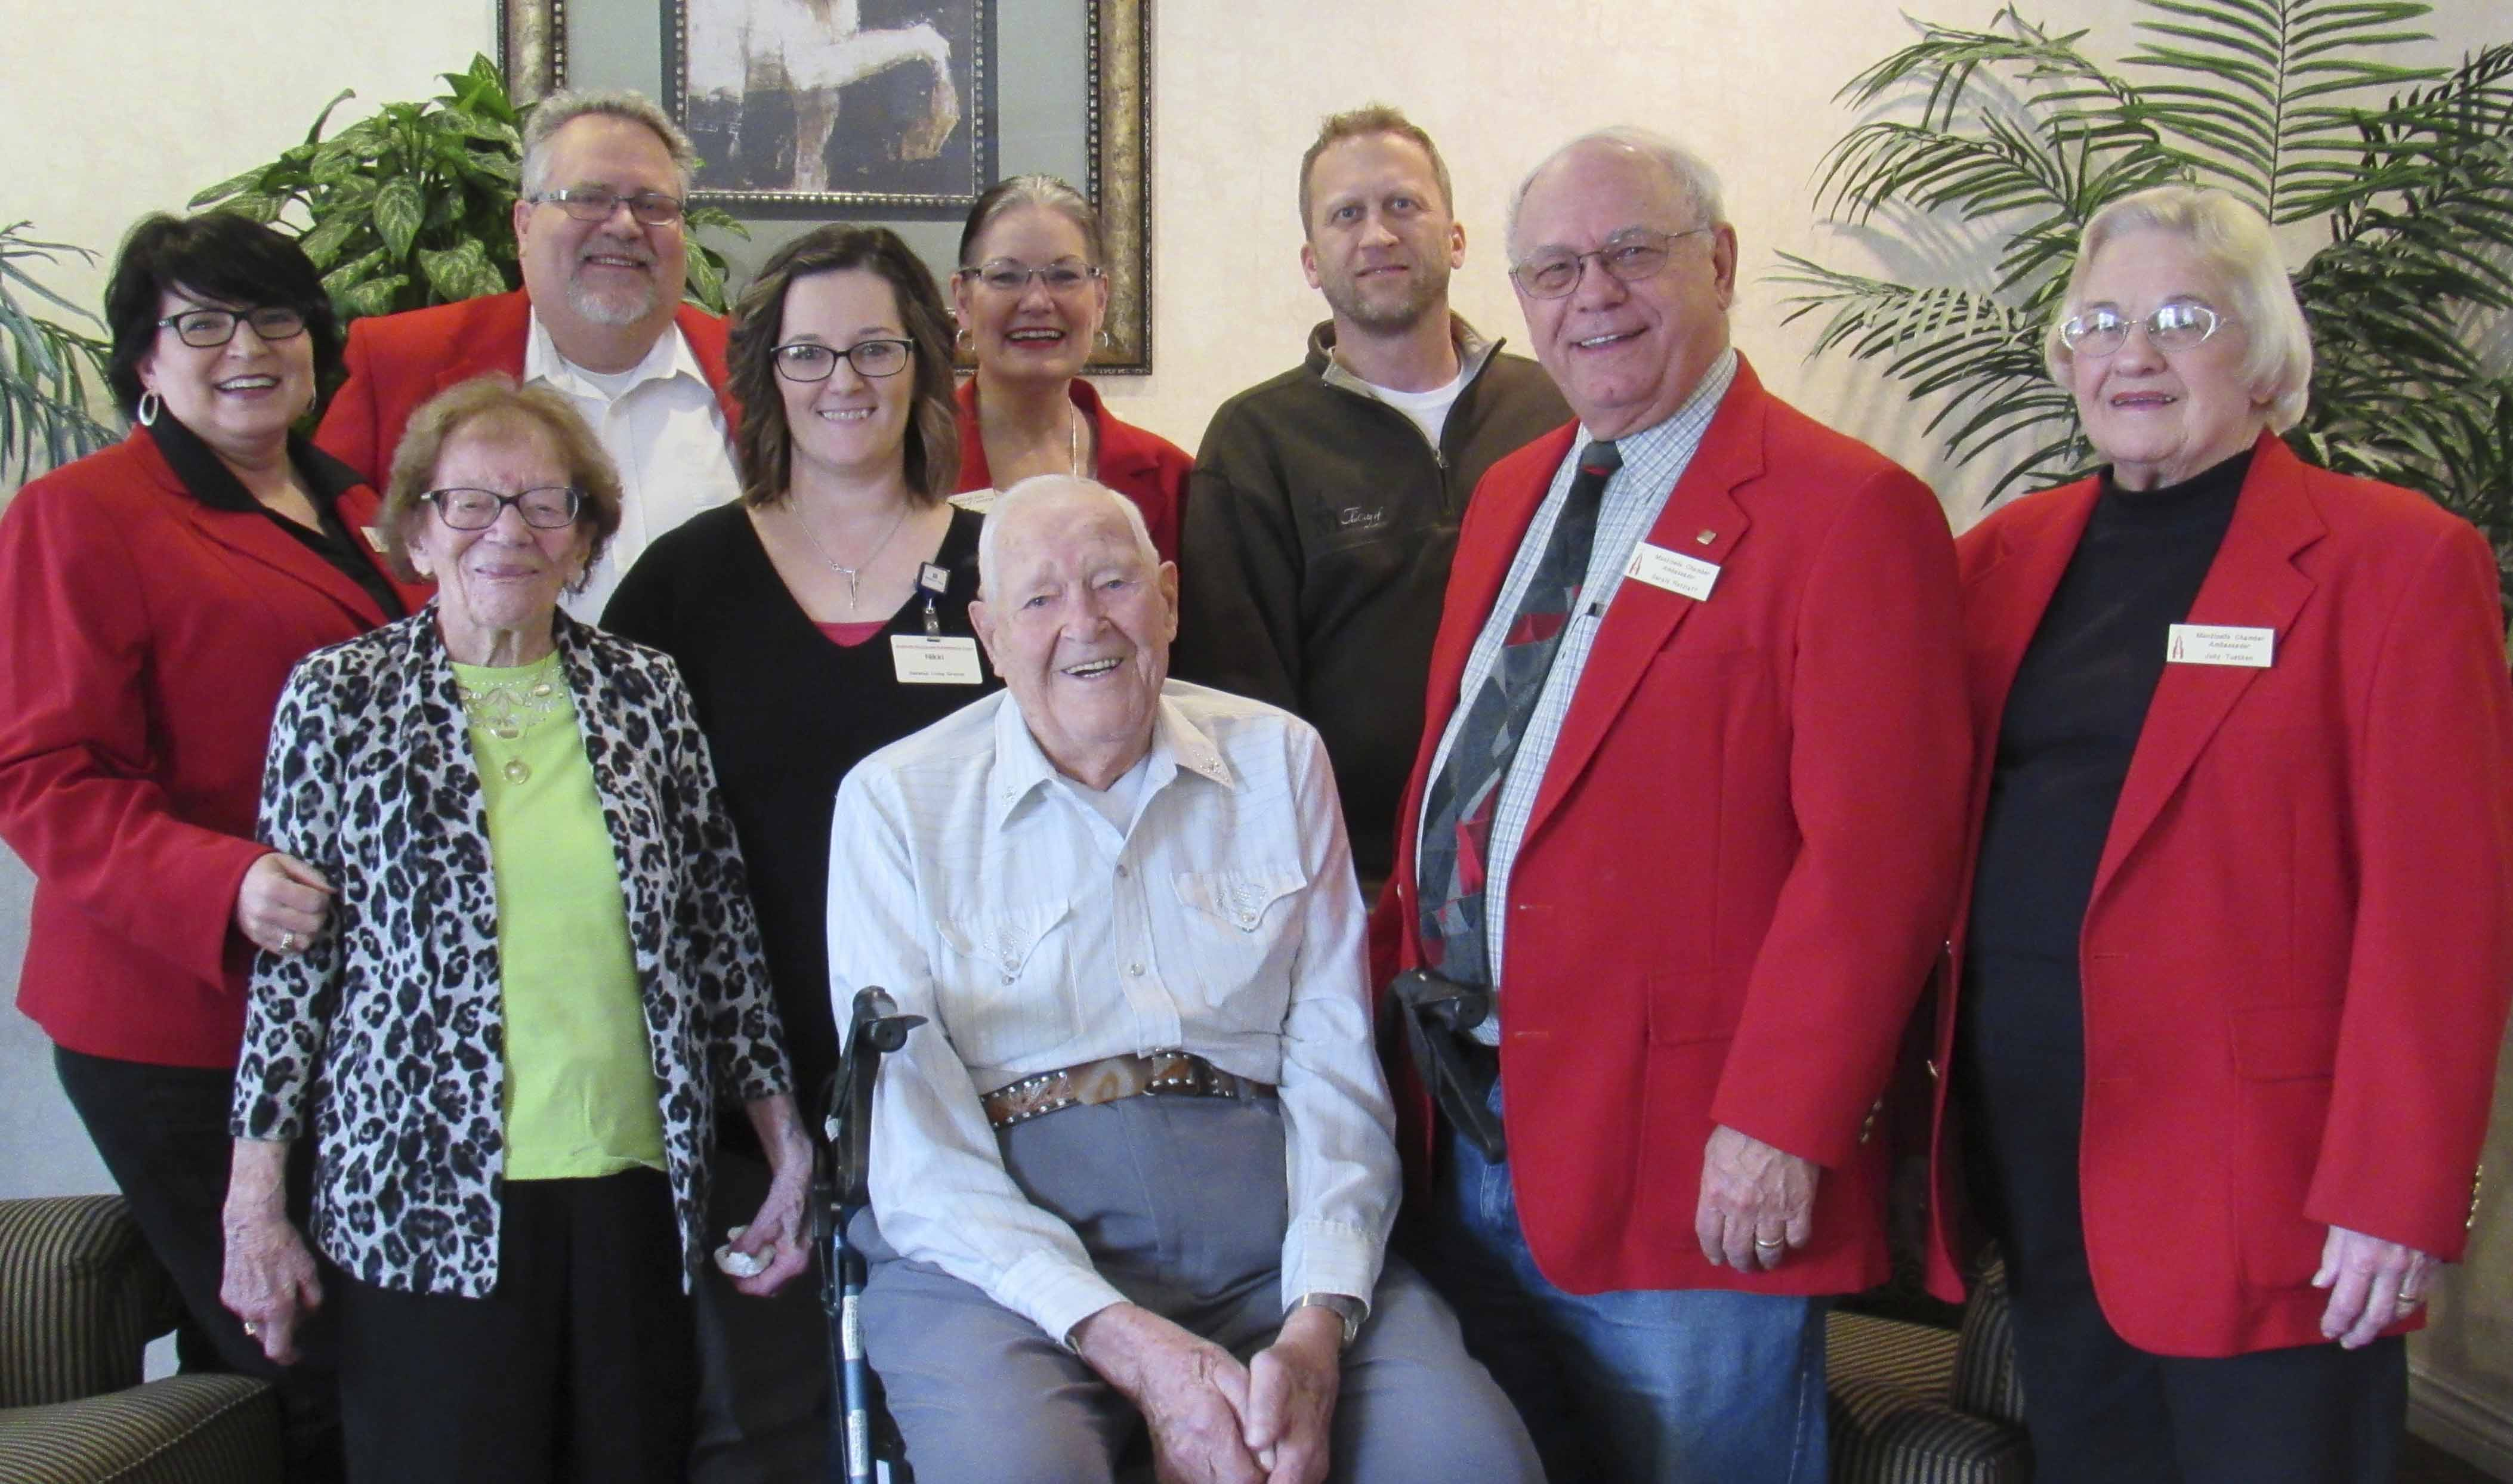 The Monticello Chamber Ambassadors welcomed Nikki Siebels as the new director at Pennington Square Assisted Living Center. Front from left are Pennington tenants Naomi Bender and Ed Brokens, Ambassadors Jerry Retzlaff and Judy Tuetken. Back row, Annette Smith, Craig Thompson, Siebels, Chamber Director Jan Hoag, and Doug Herman. (Photo by Kim Brooks)